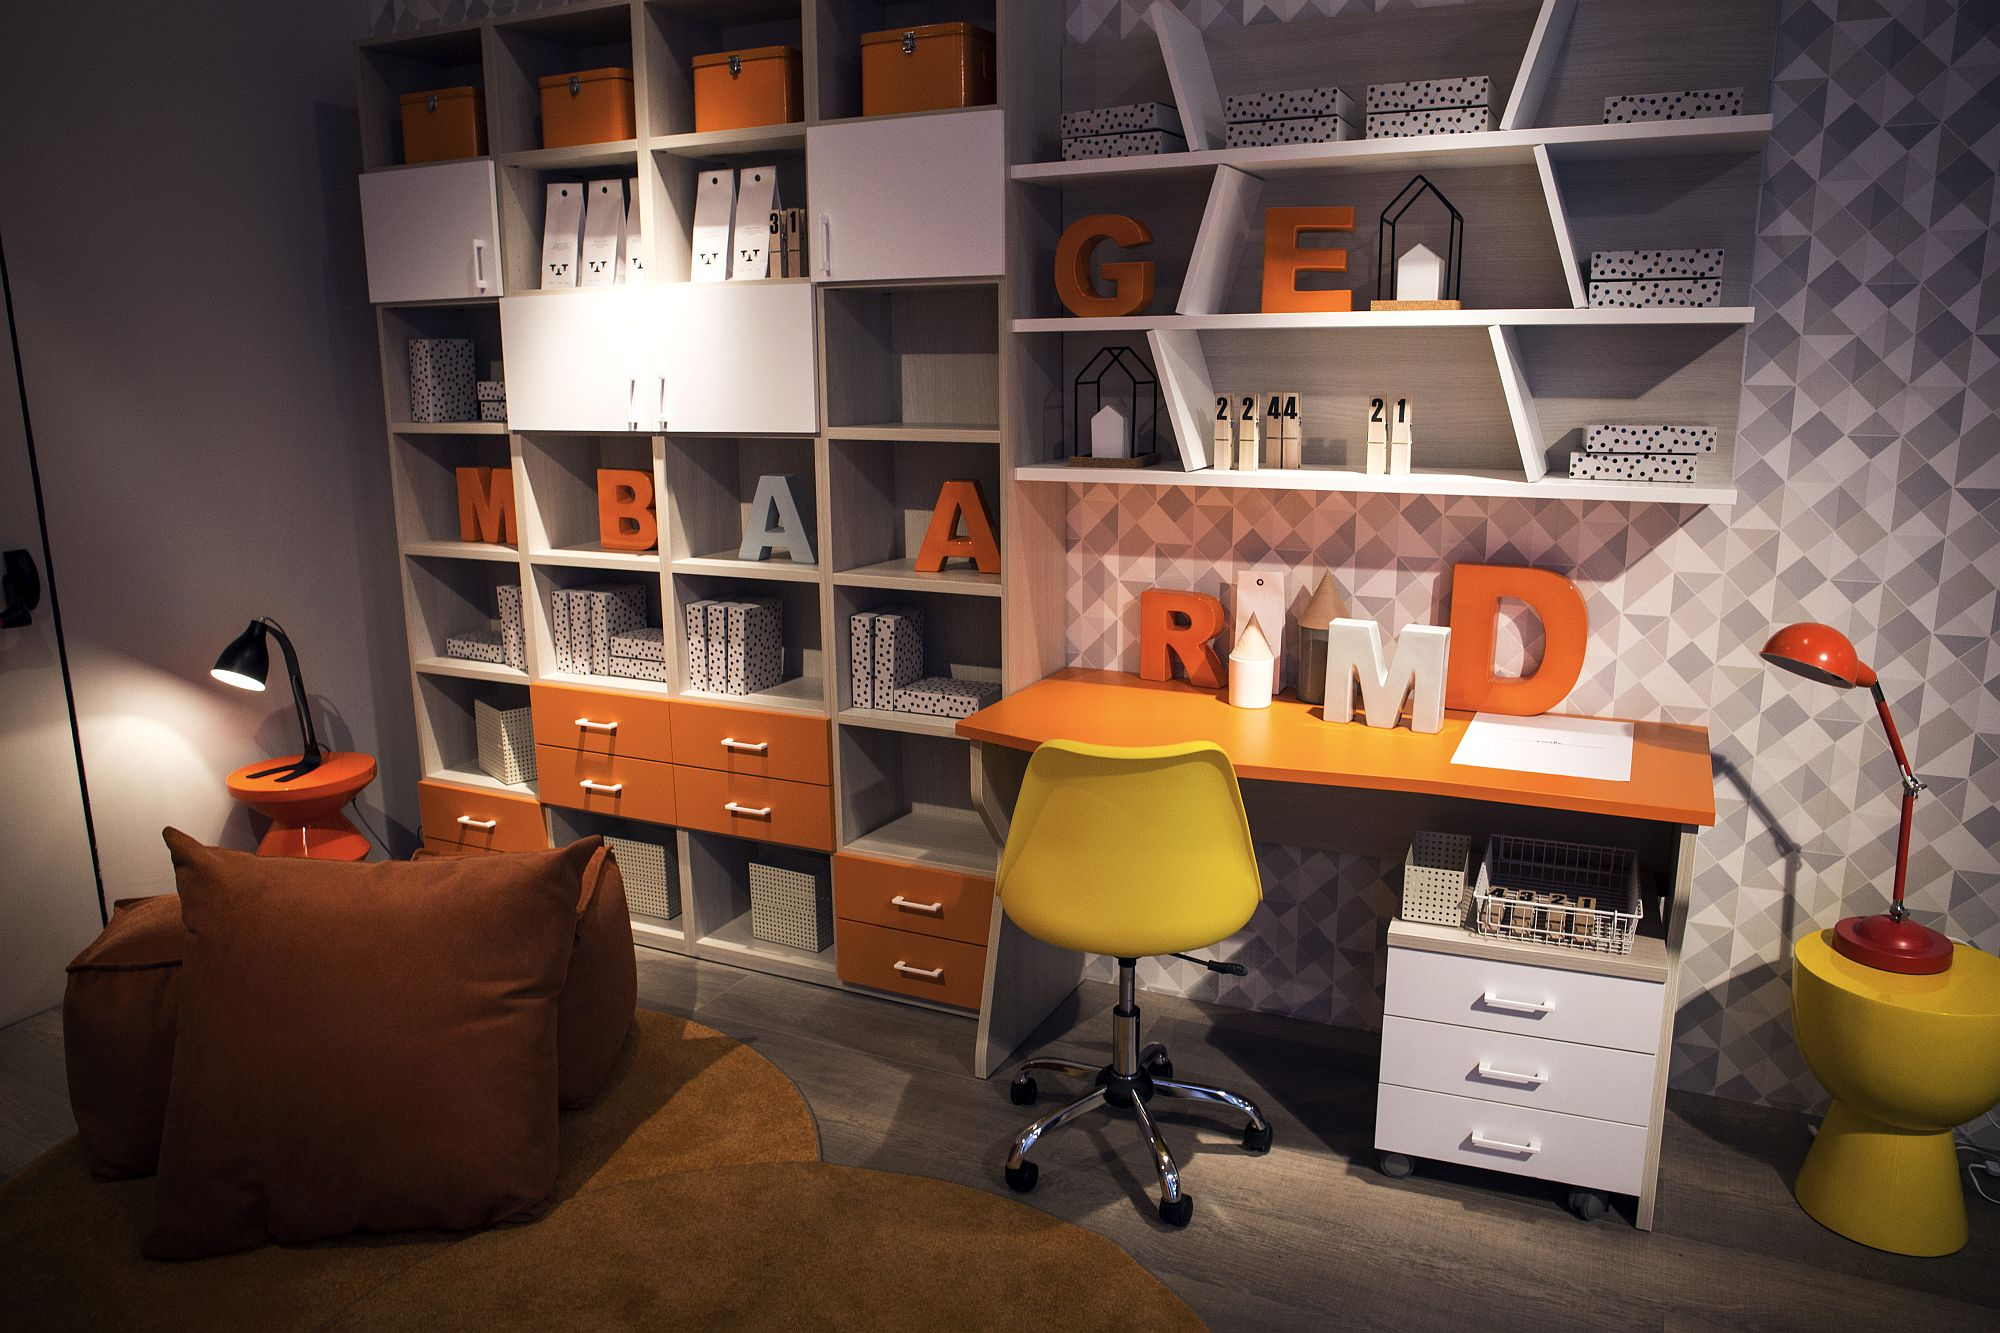 Modular shelving coupled with smart workstation and pops of yellow and orange